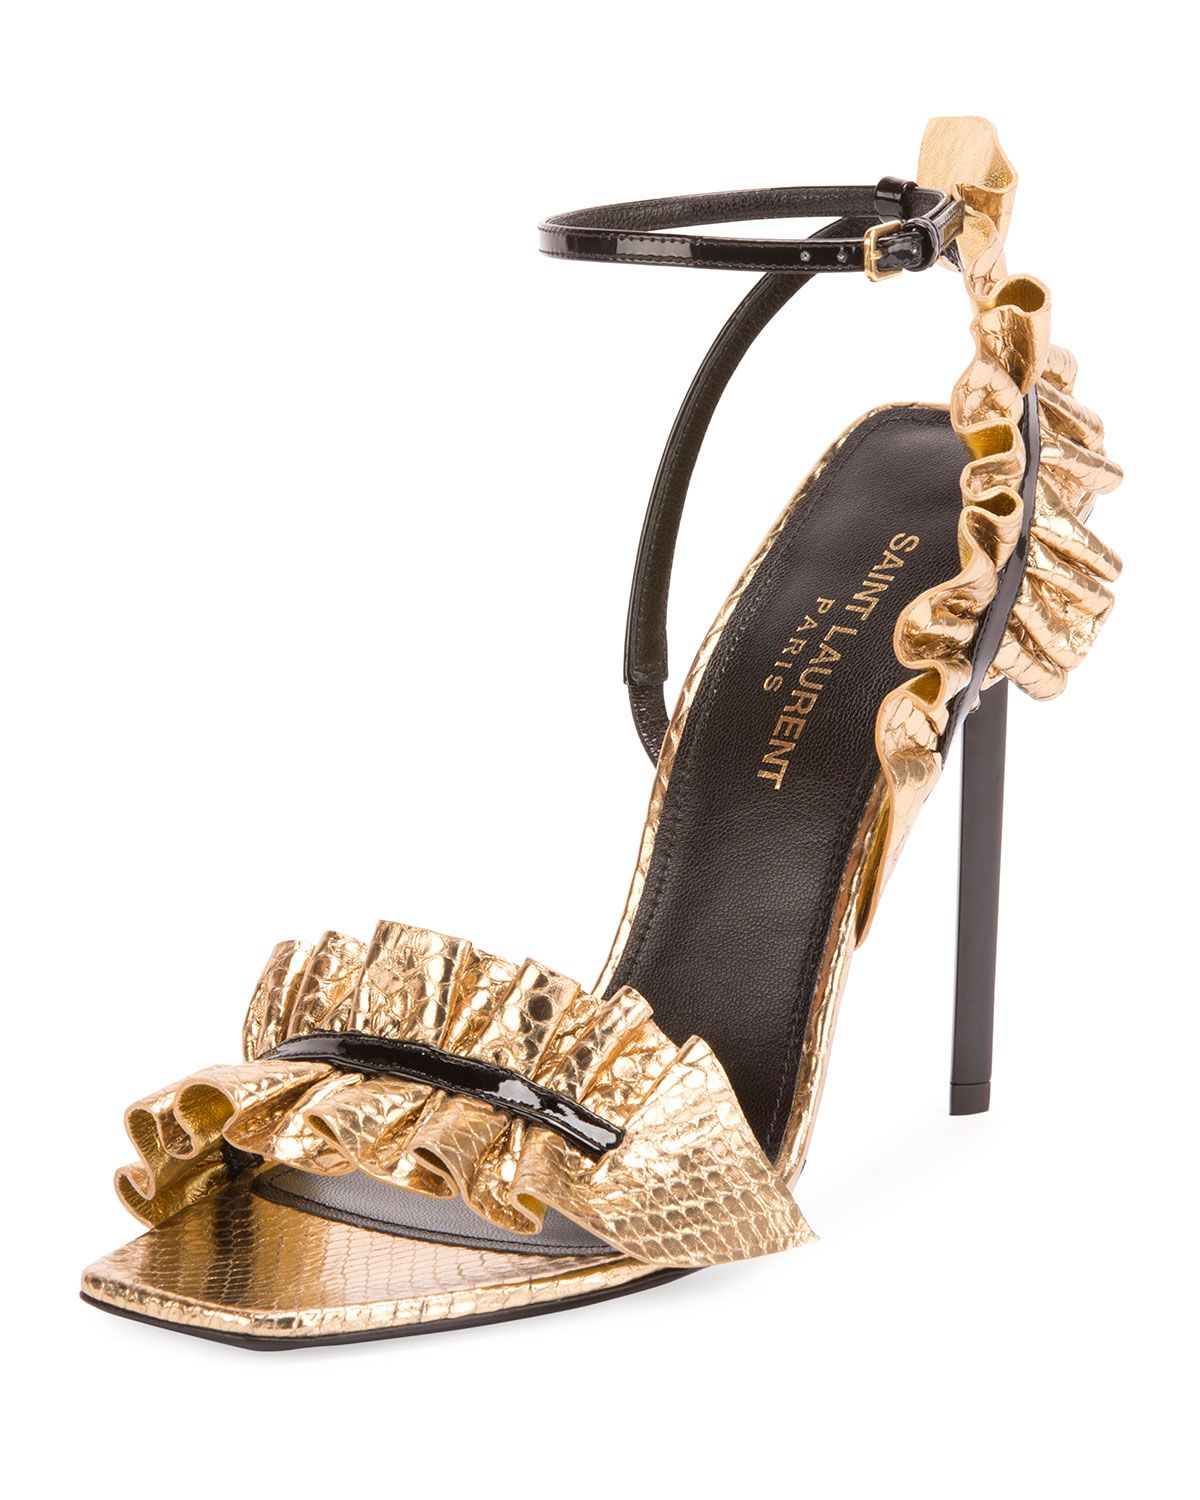 Yves Saint Laurent Snakeskin Slingback Sandals buy cheap explore clearance genuine buy cheap official geniue stockist for sale i15bXqw